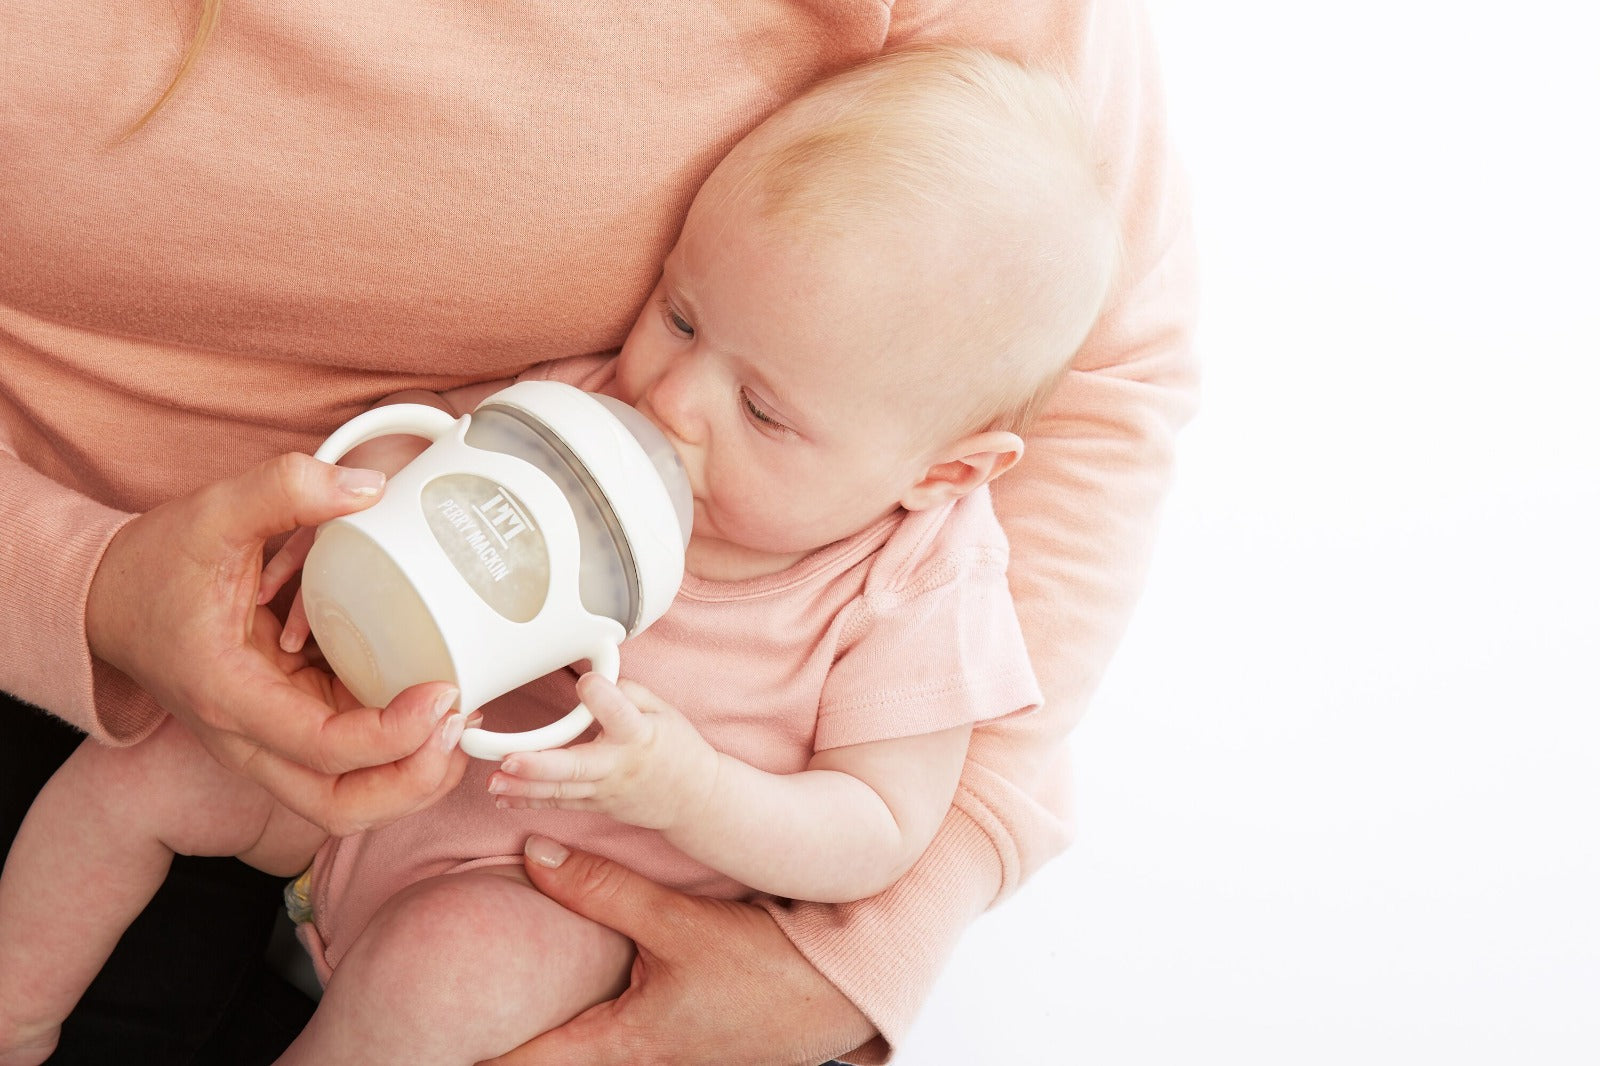 7 Bottle Feeding Tips for First-Time Parents